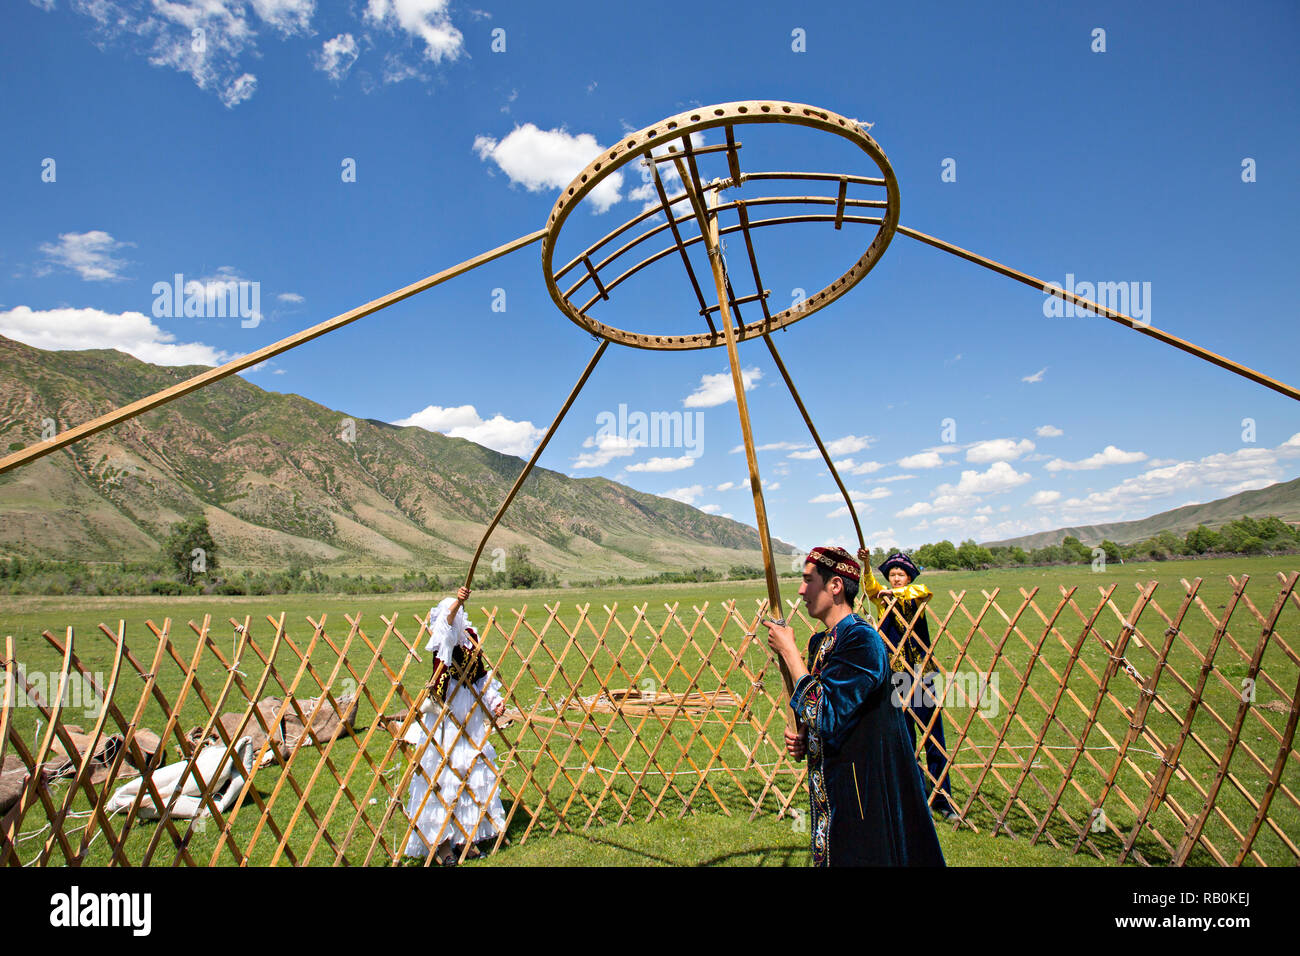 Kazakh people building a nomadic tent known as yurt. - Stock Image